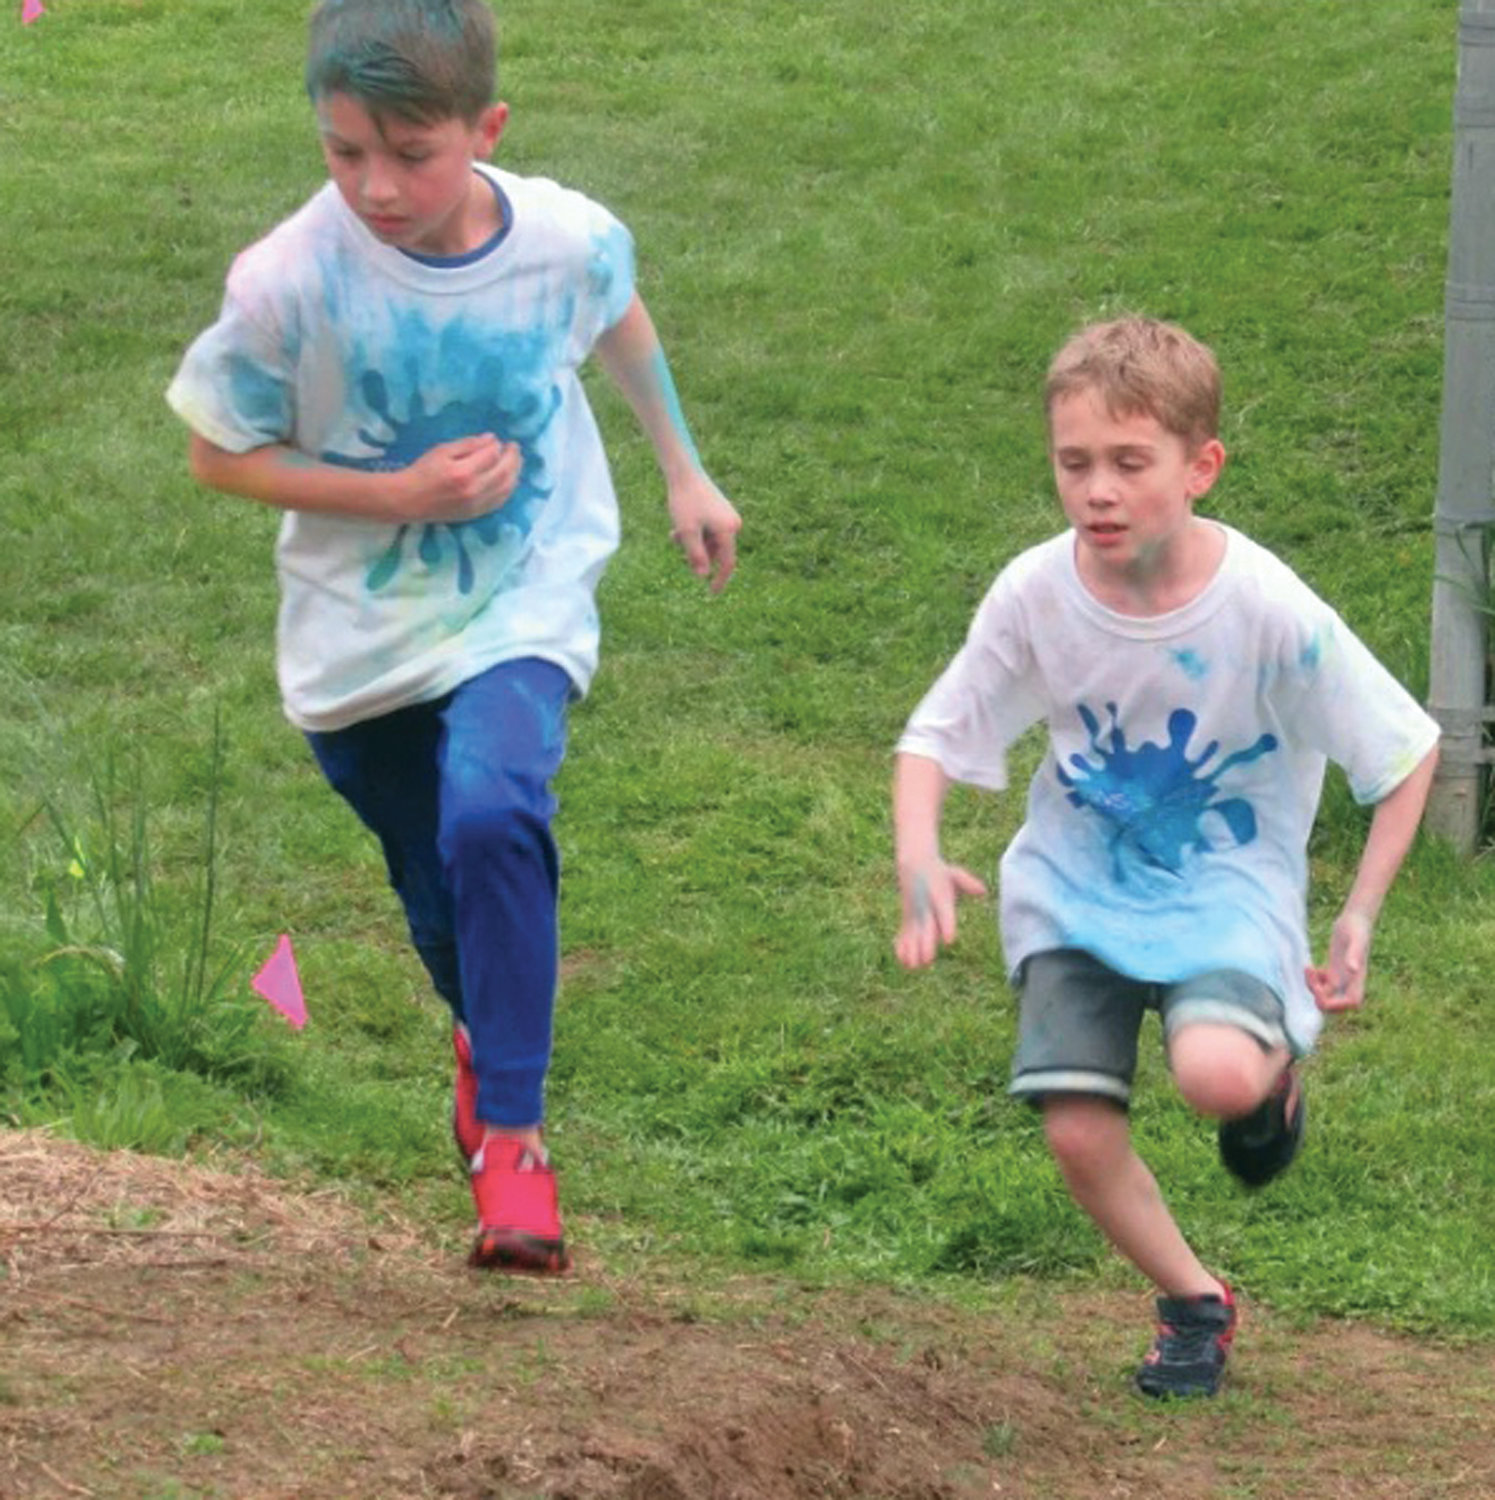 DASHING DUO: There was a race to the finish that included students getting covered in colored cornstarch during Friday's third annual Color Run at Winsor Hill School.